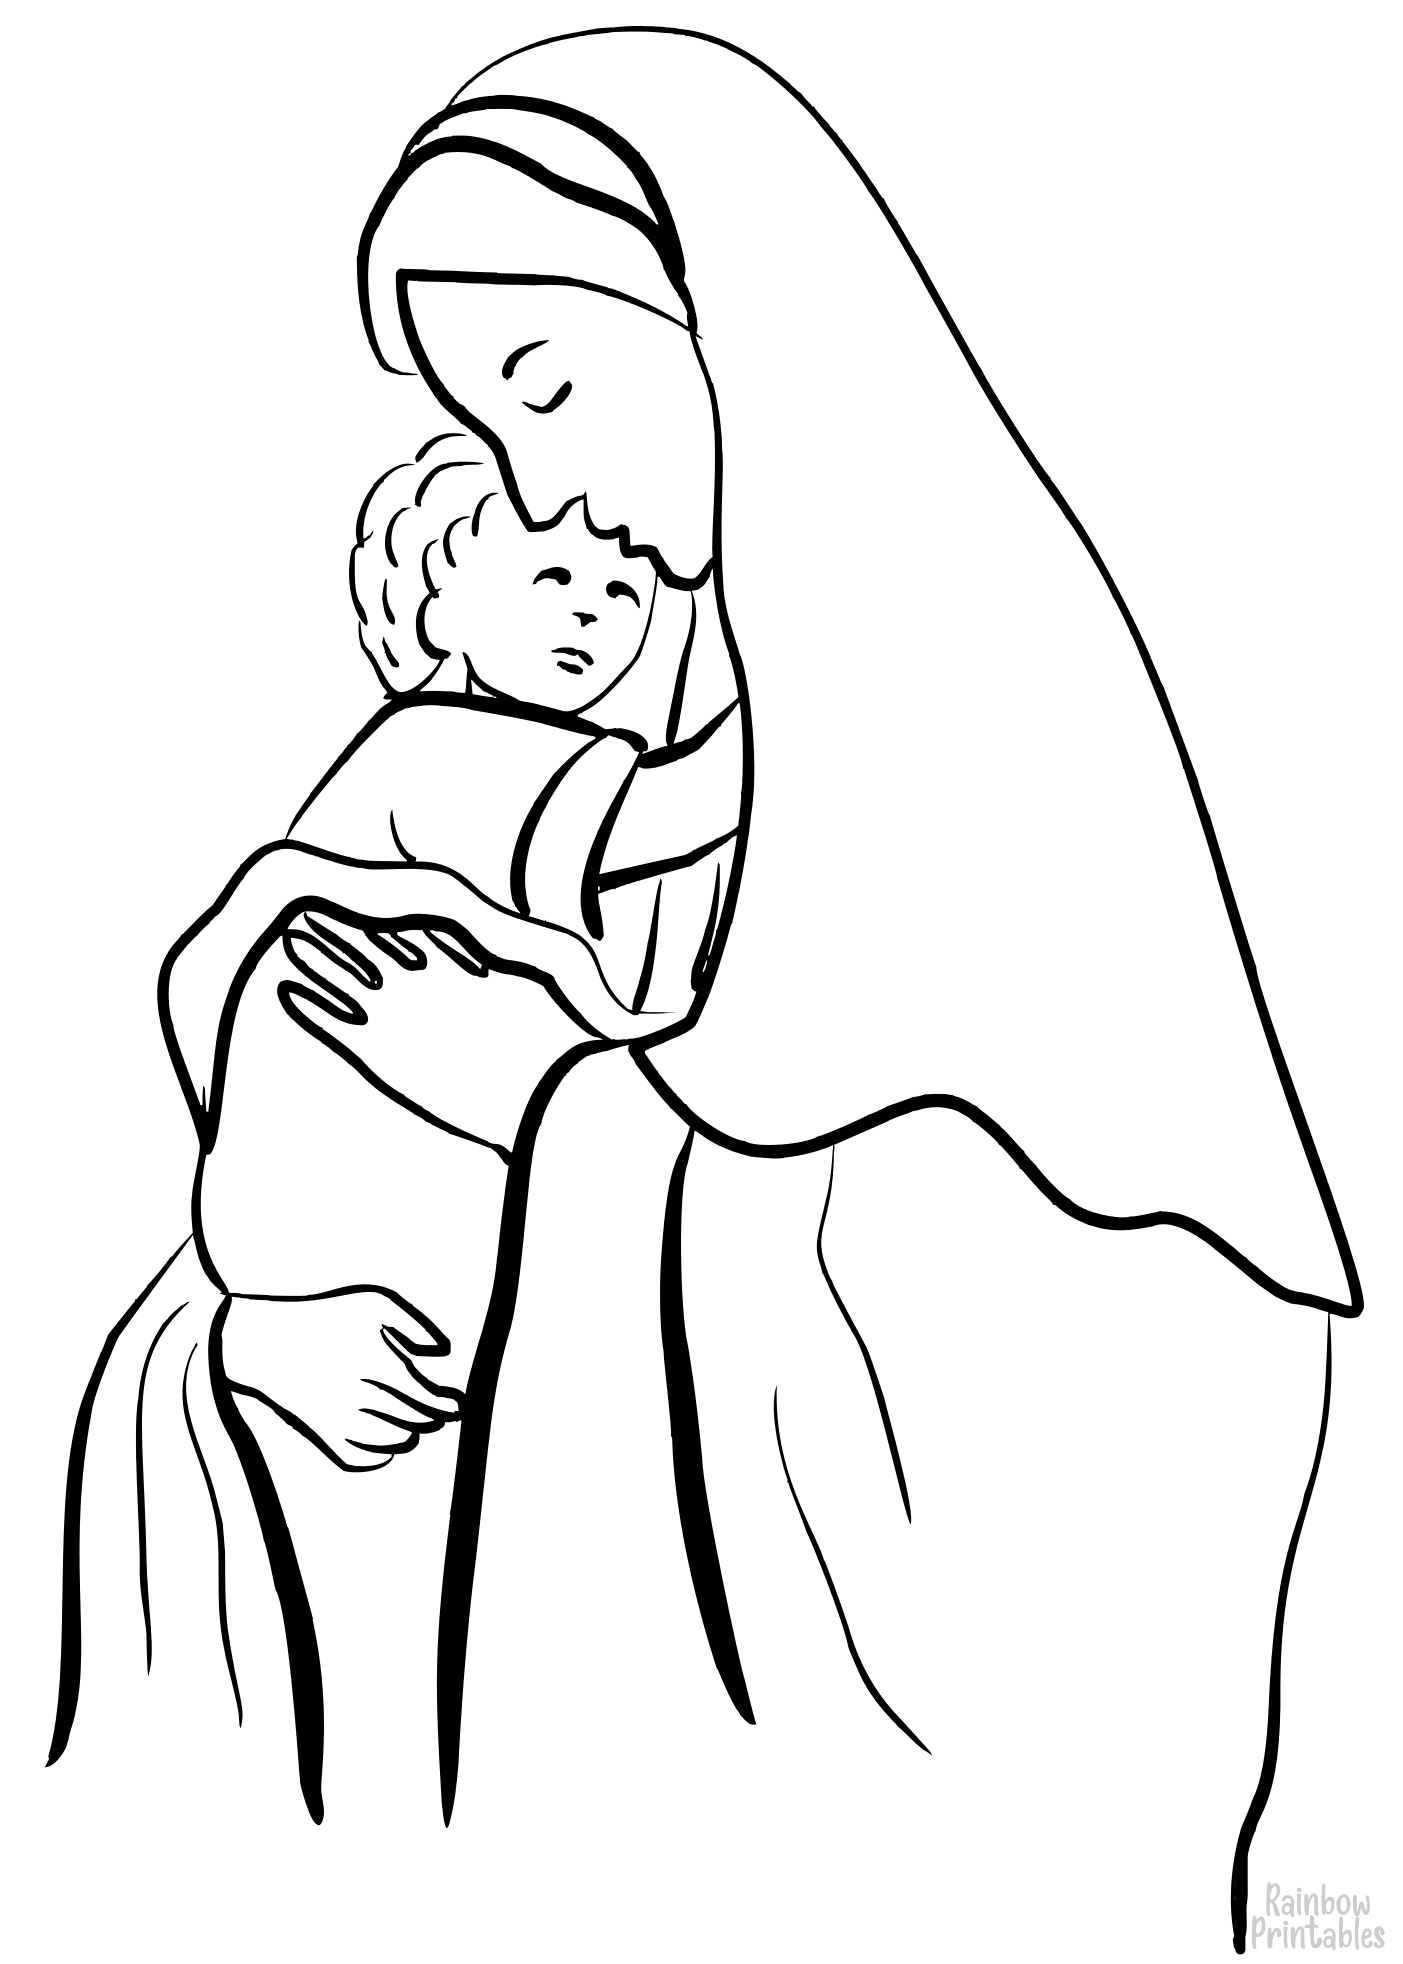 mother mary holding child jesus coloring page